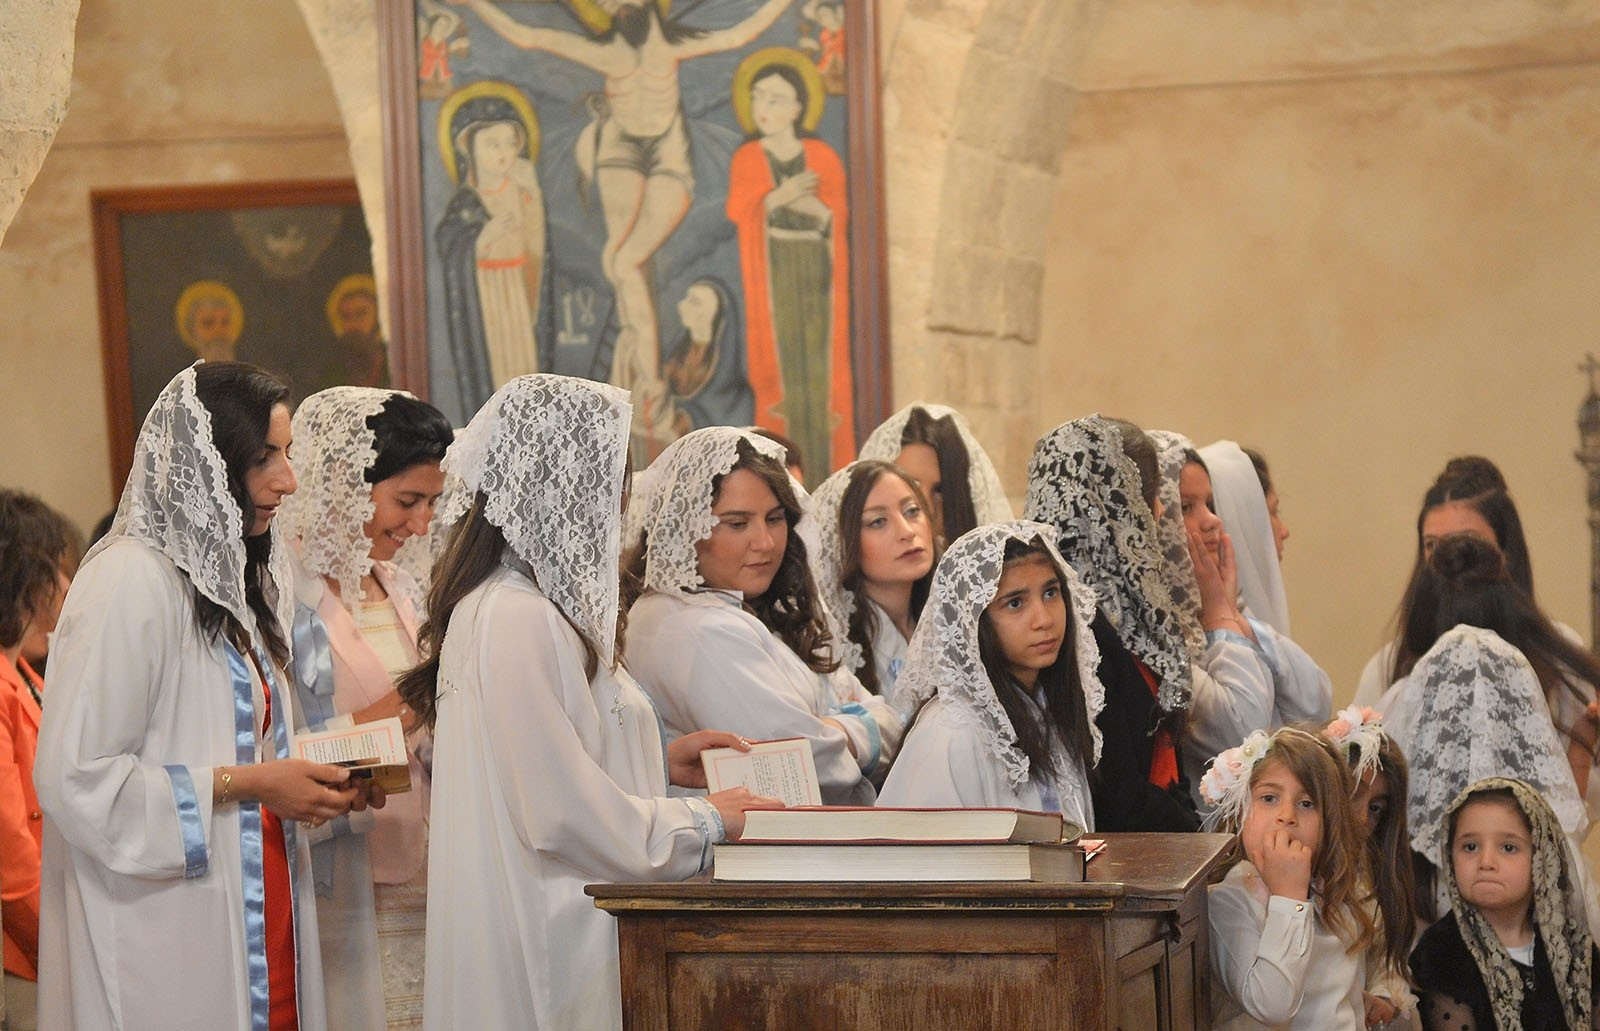 Assyrian community in southeastern Turkey's Mardin province attend Easter services at the Kırklar Church AA Photo